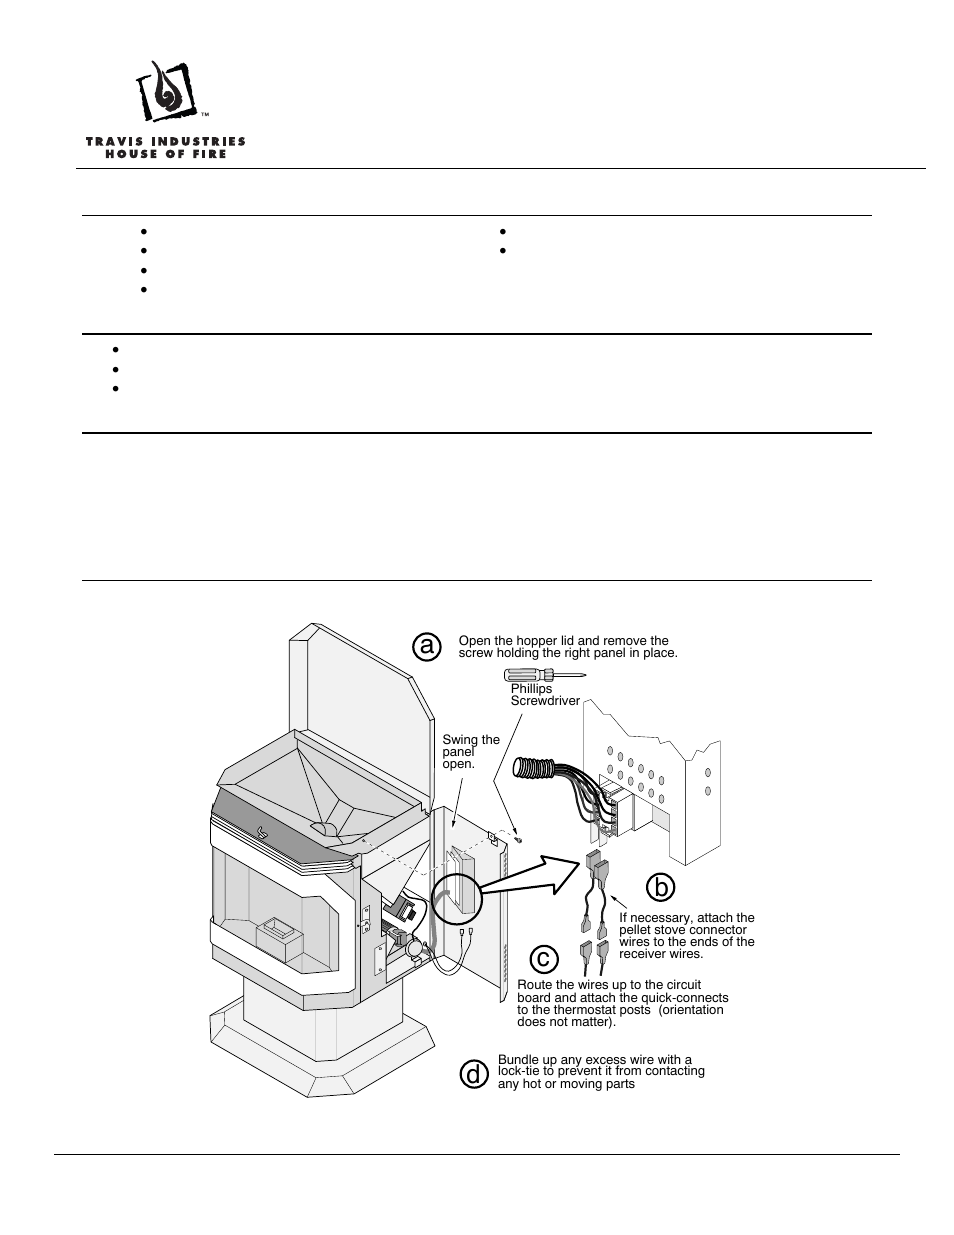 avalon firestyles gas/pellet remote thermostat user manual